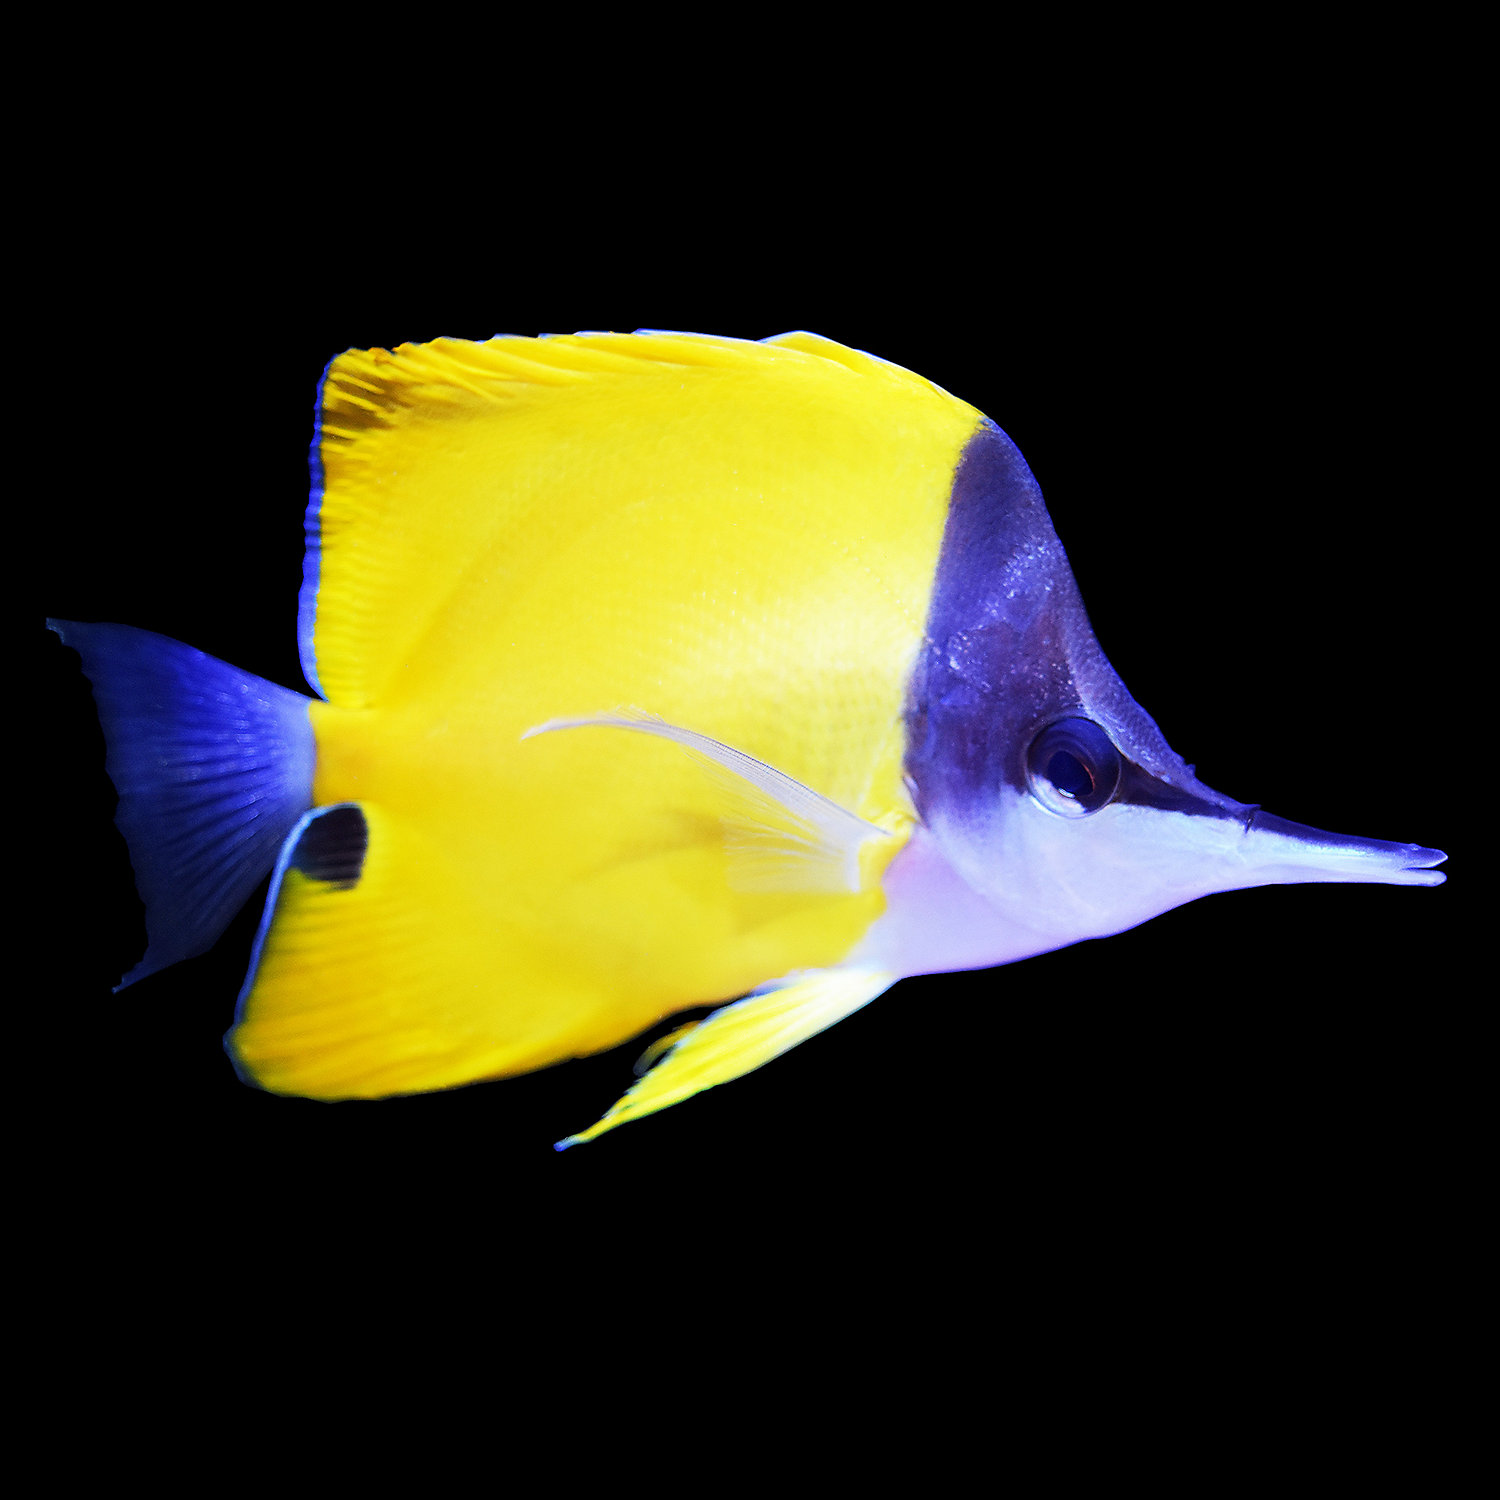 Live fish marine fish butterflyfish pet supplies for Petco live fish